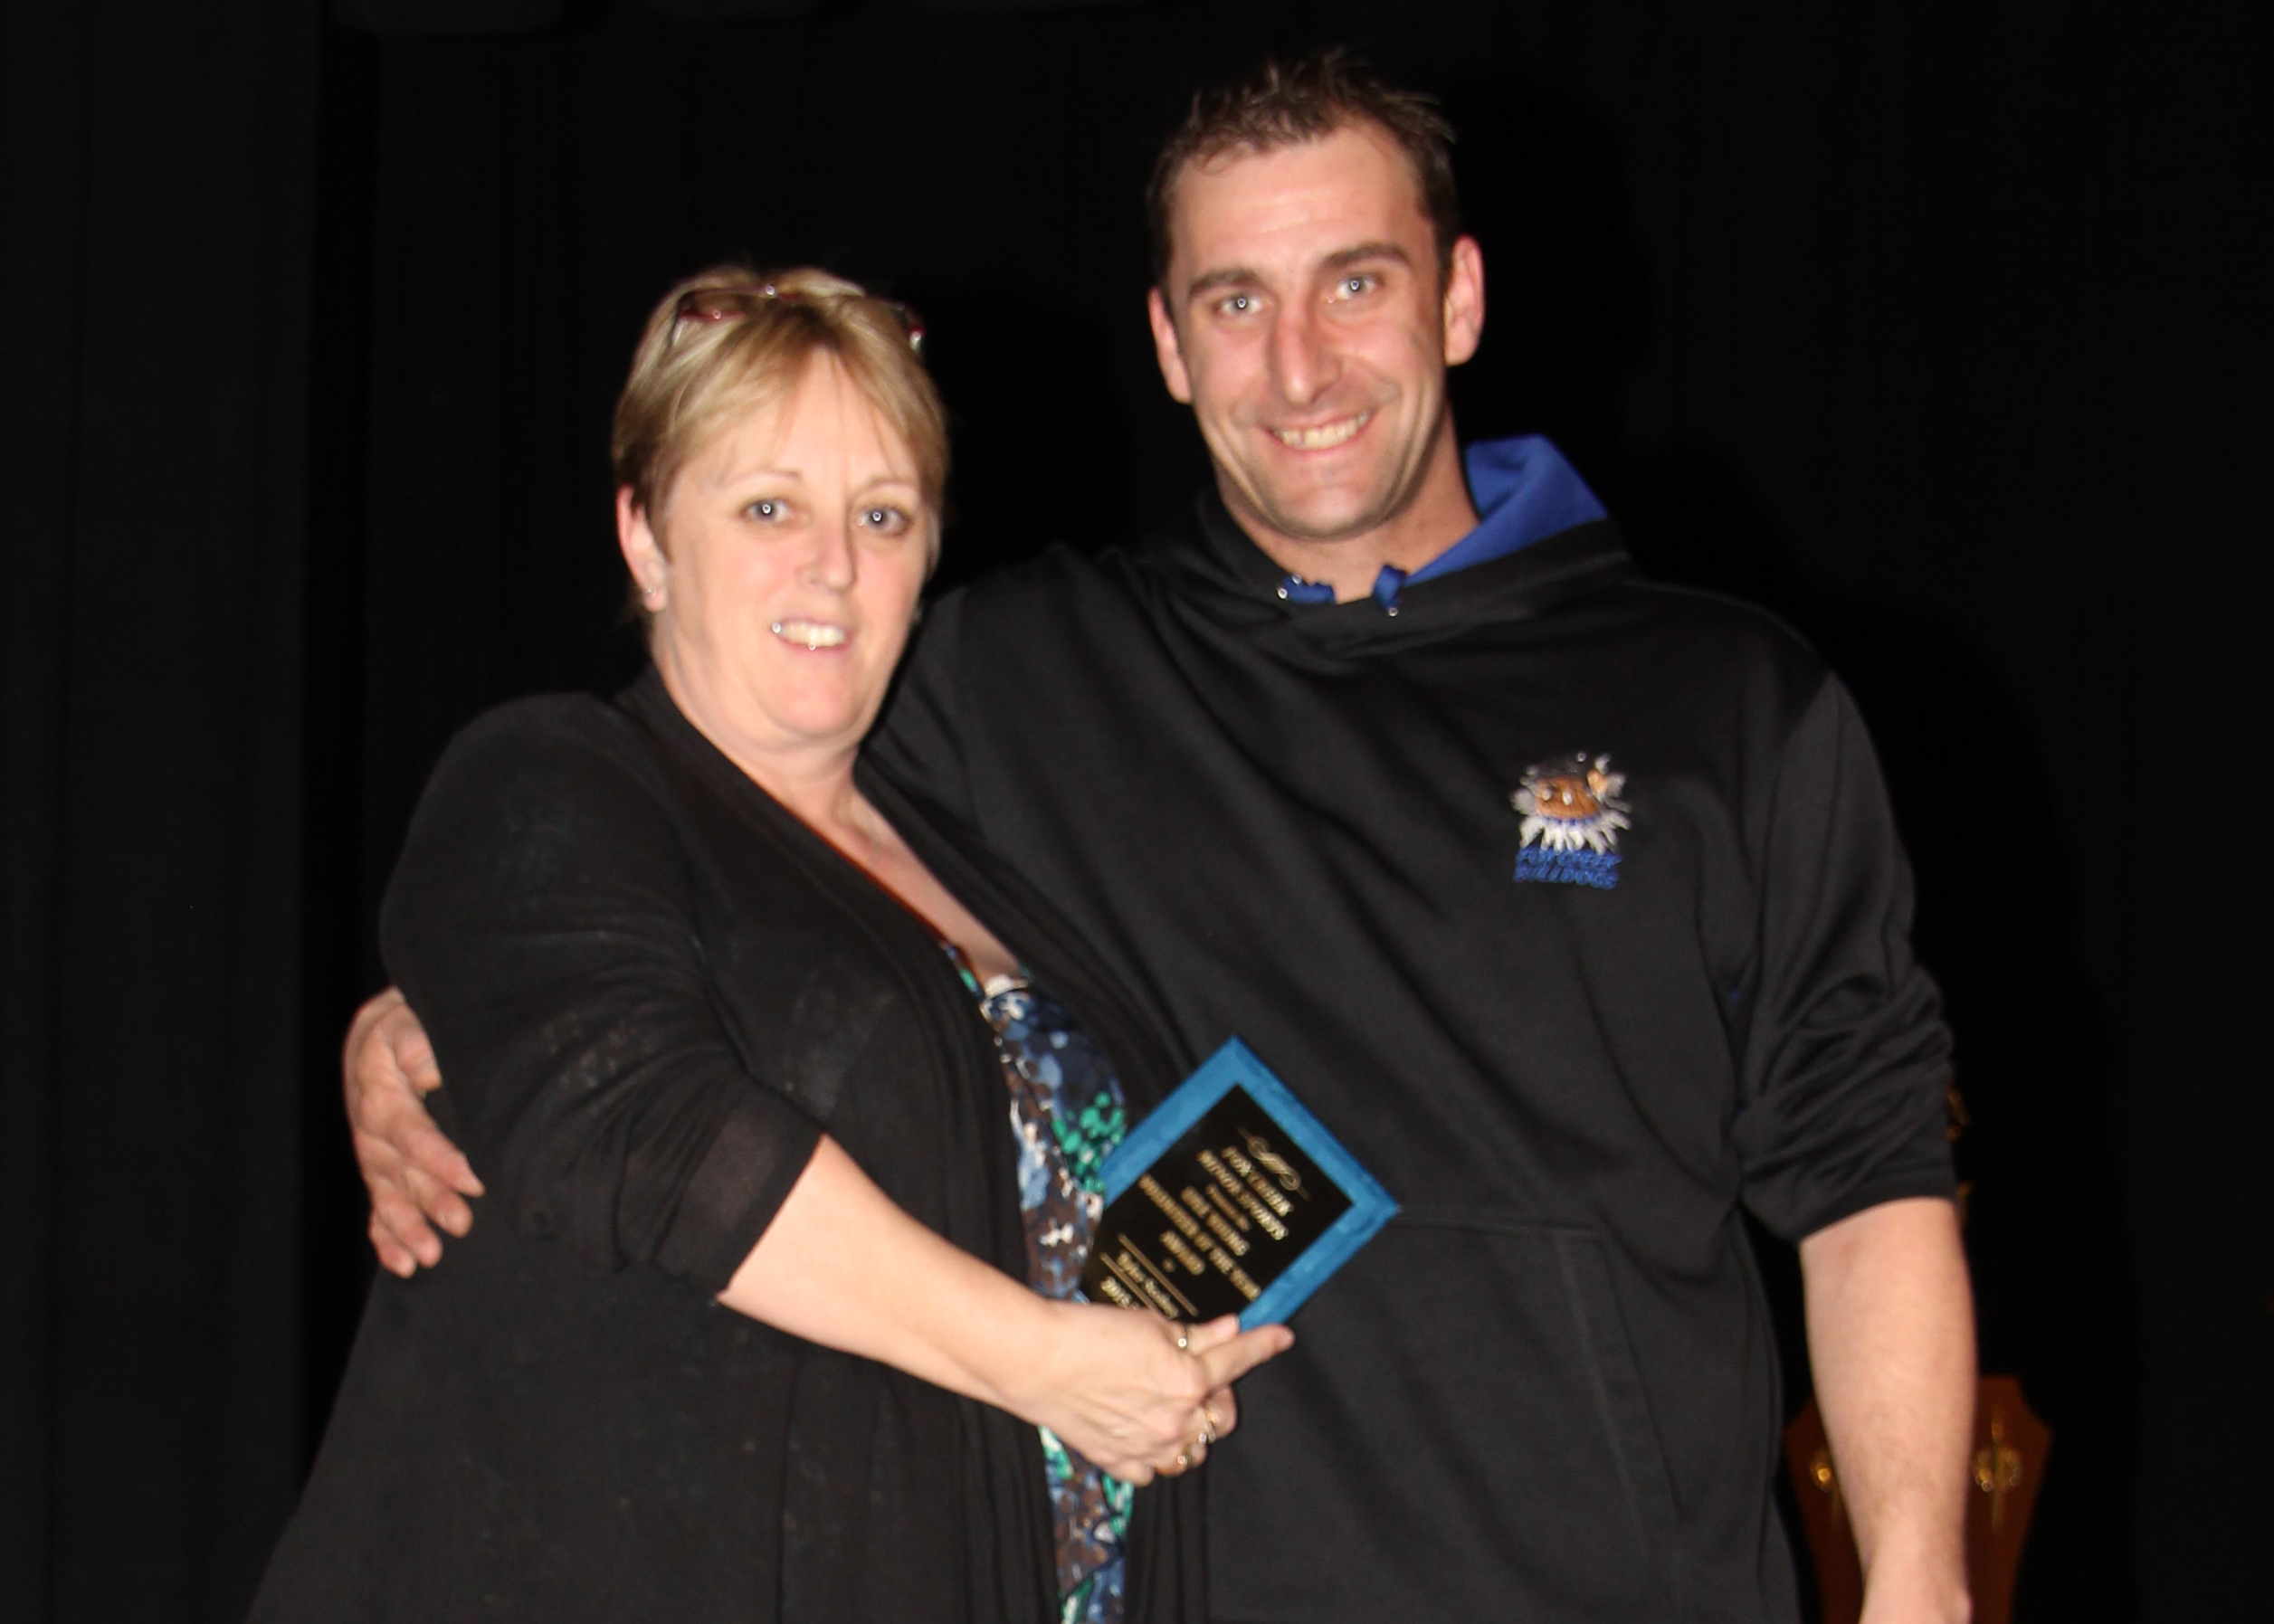 Brenda Burridge presents Tyler Scobey with the Lyle Young Volunteer of the Year Award